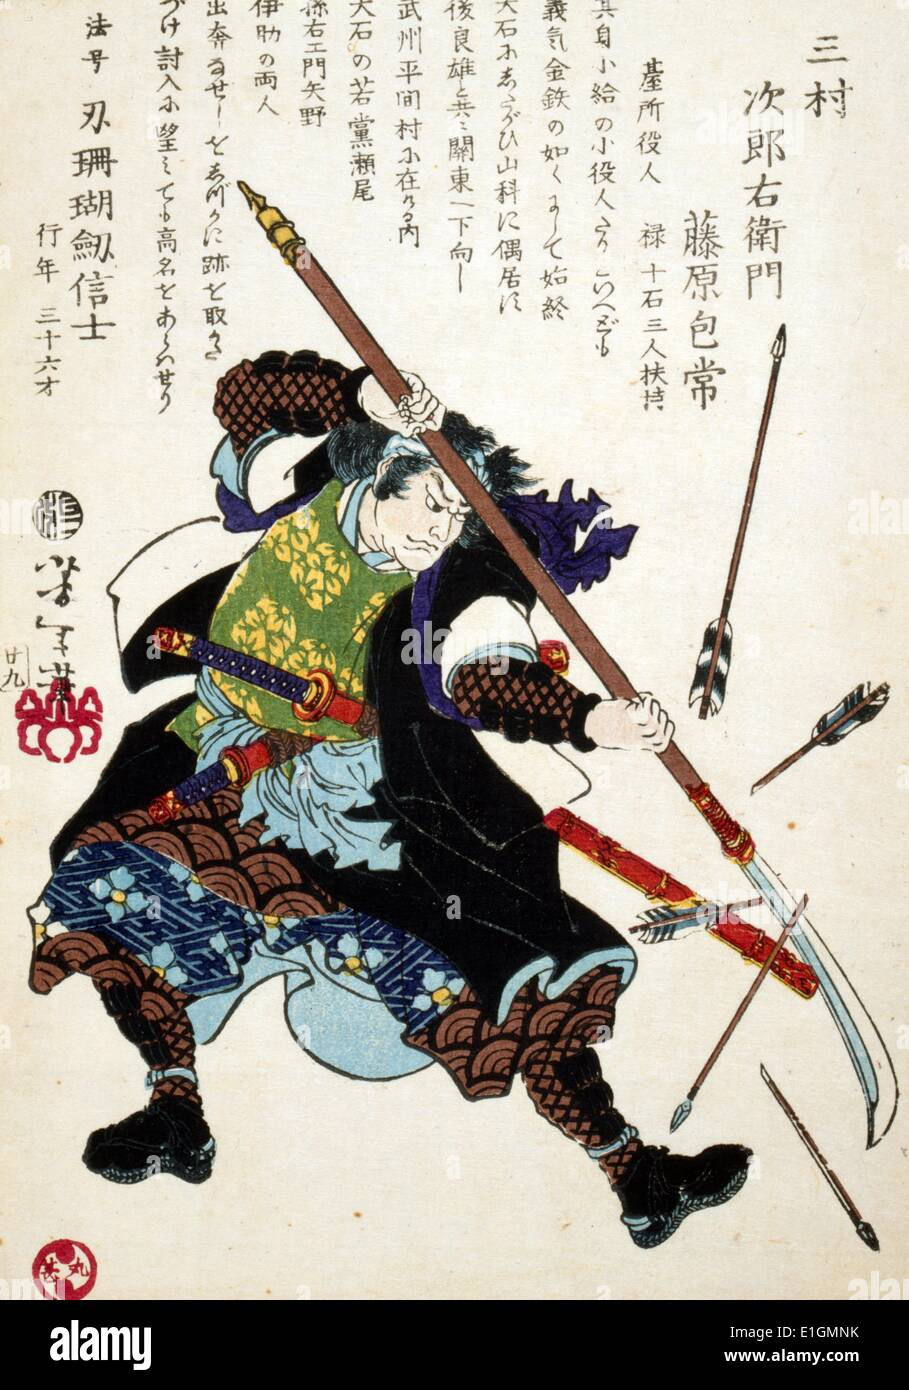 Ukiyo-e print illustration showing Ronin deflecting arrows with a long-handled sword. Dated 1869 - Stock Image